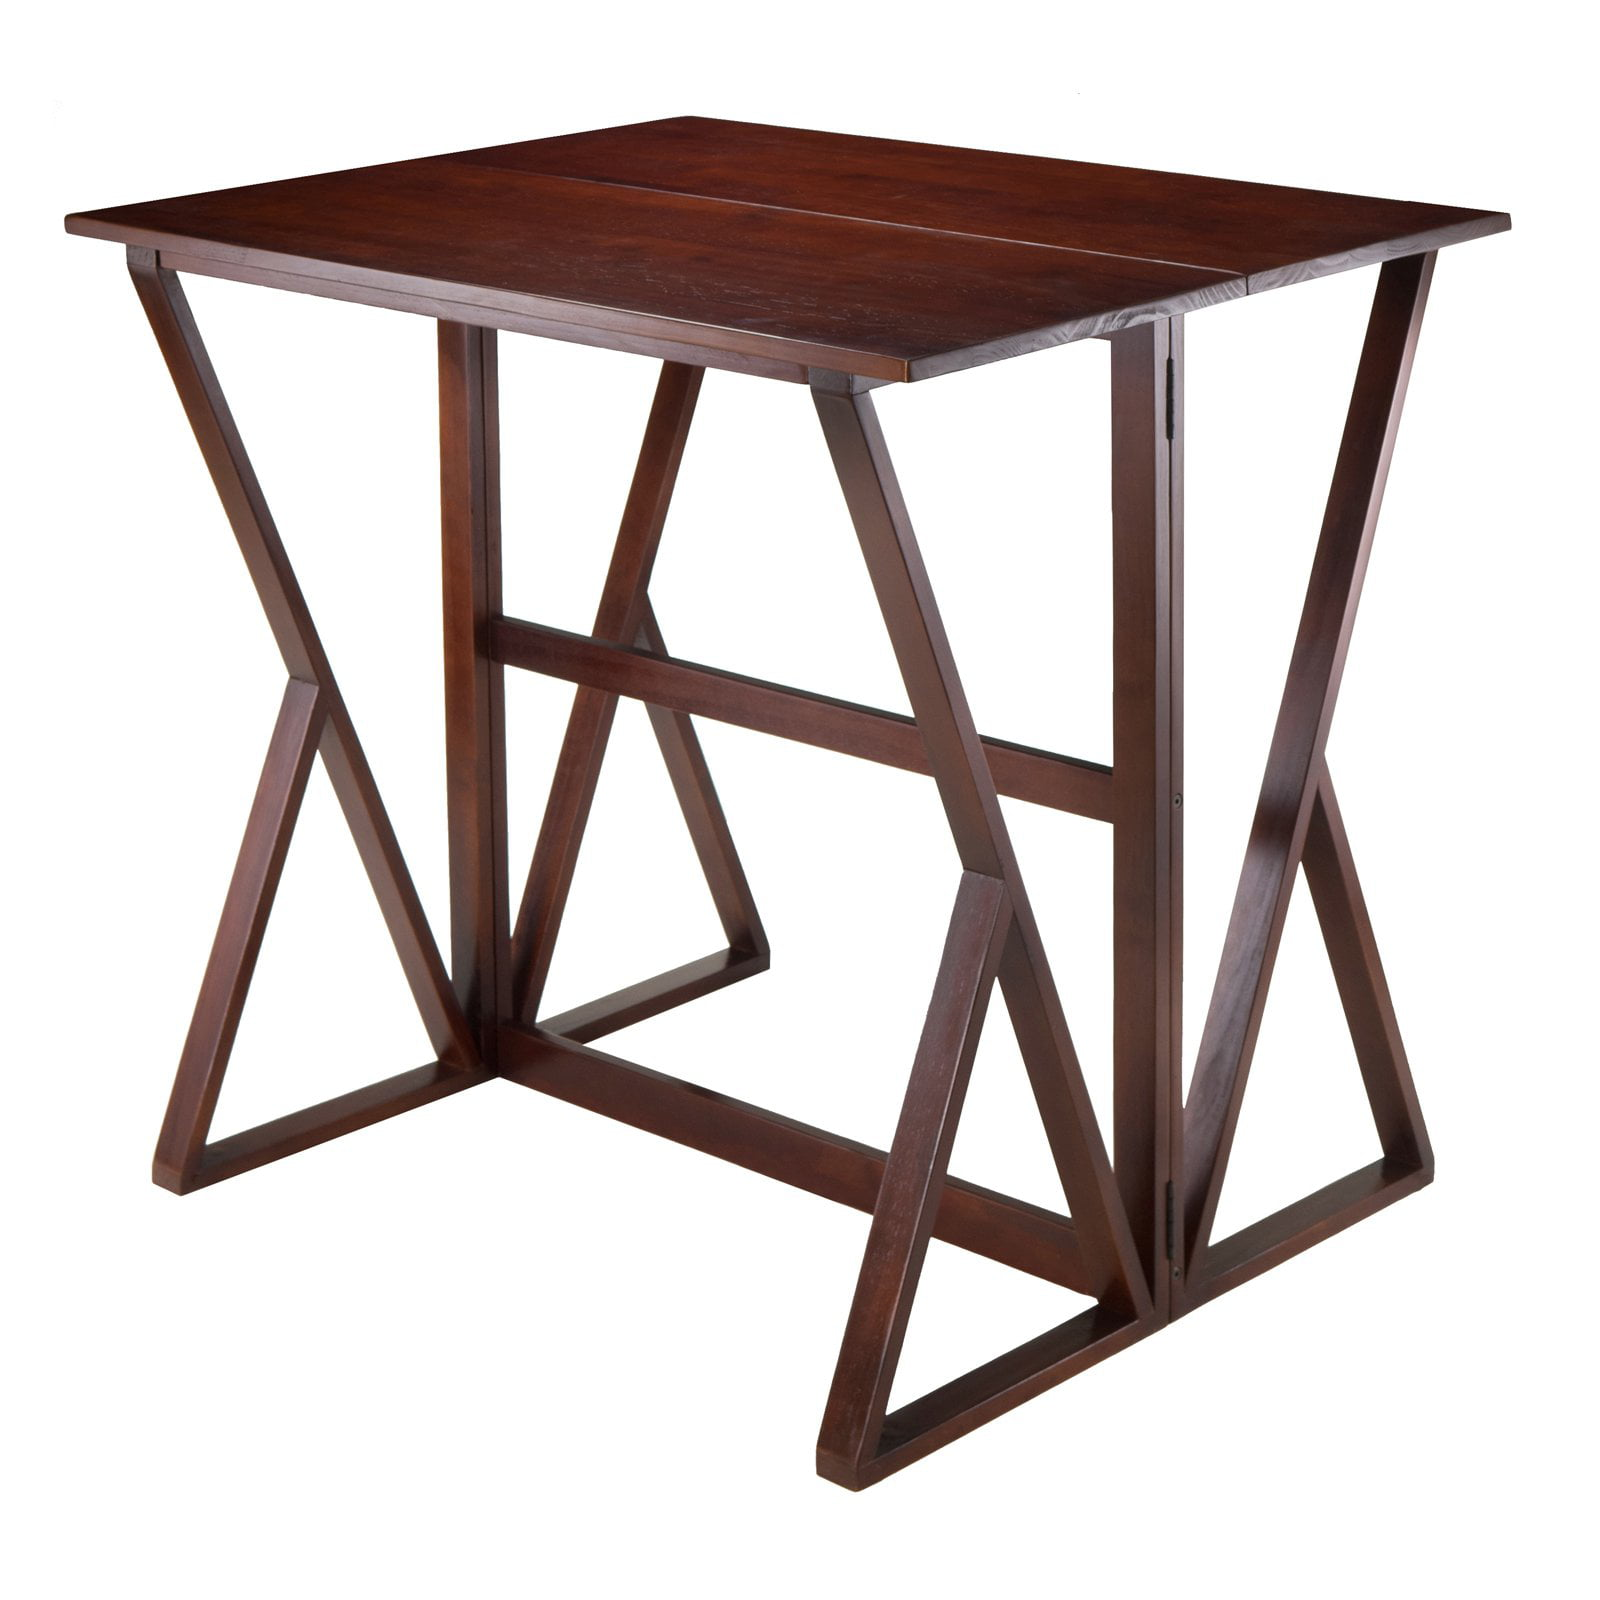 Exceptional Harrington Drop Leaf High Table Walnut Furniture Home Durable Indoor Wood  New